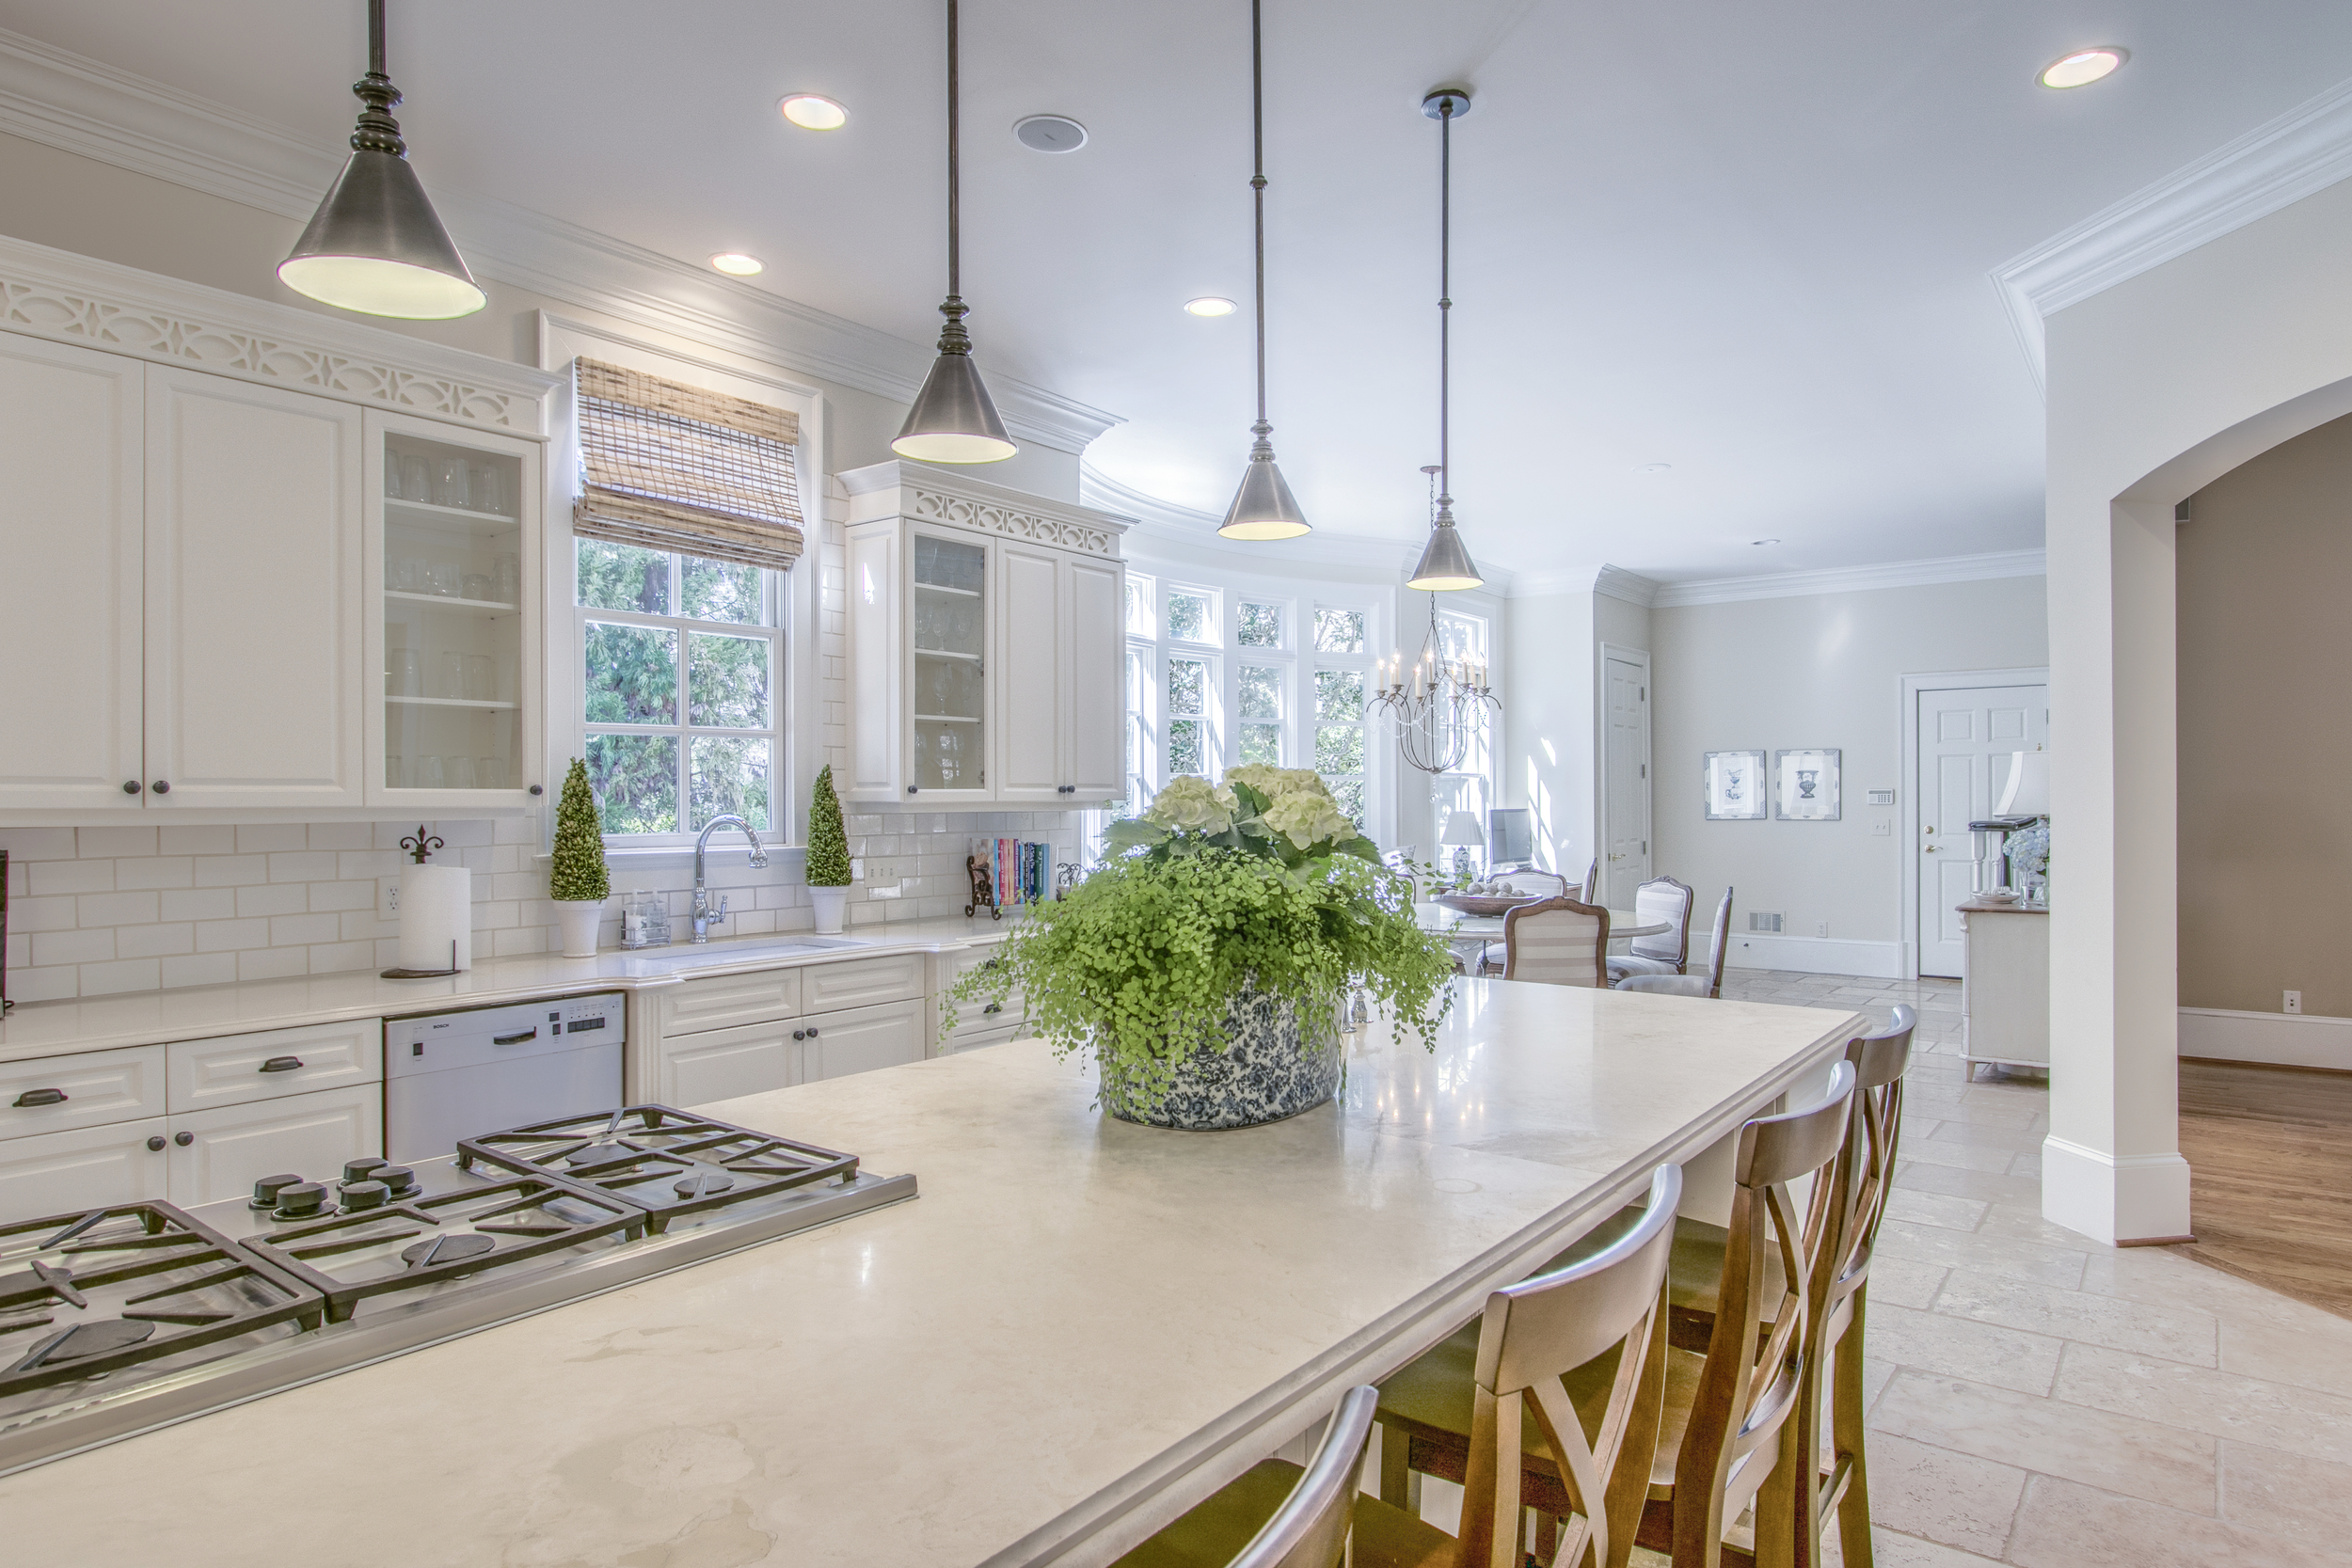 Kitchen island with pendant lights and arches